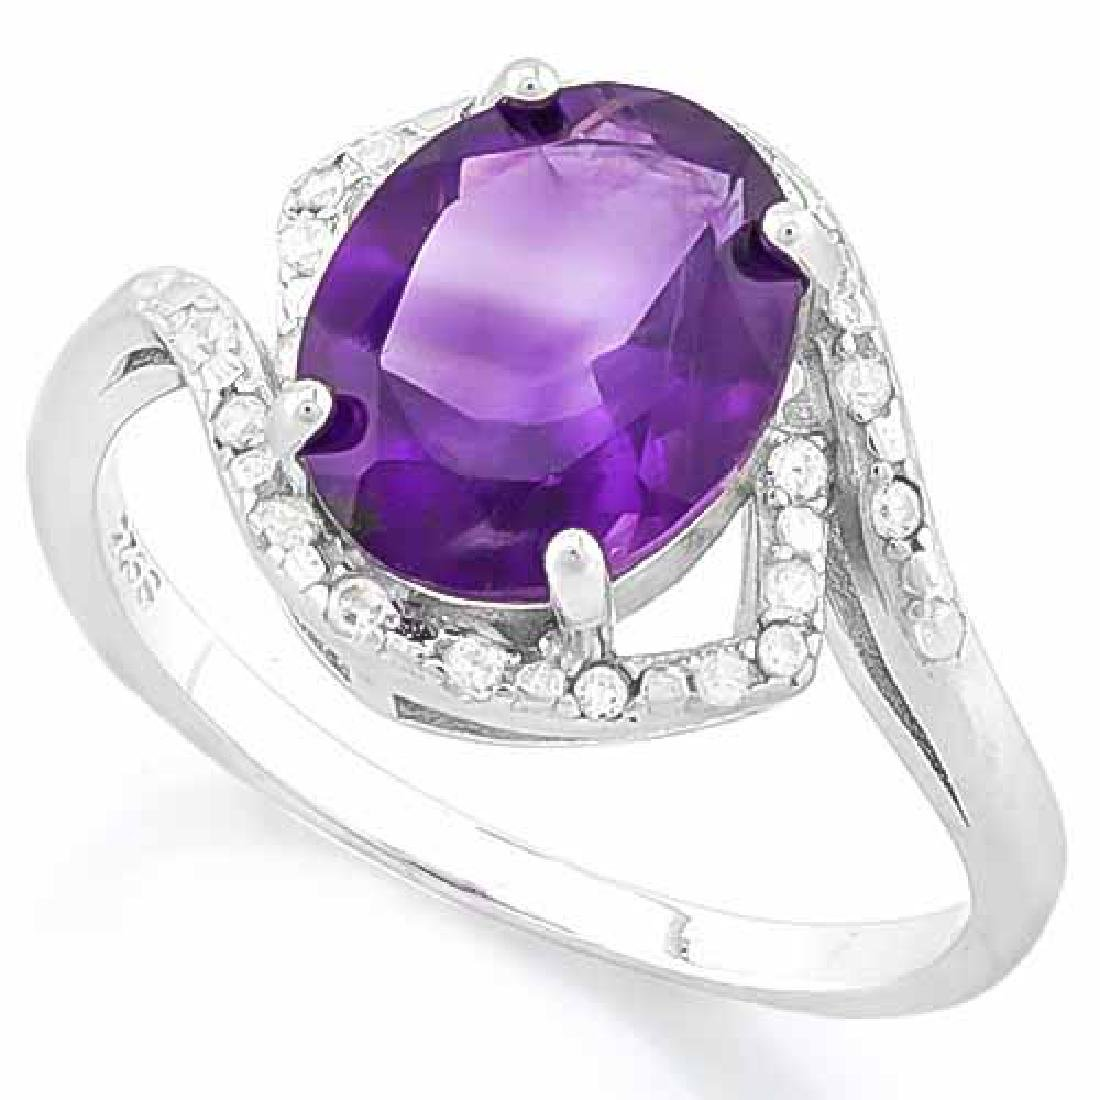 AMETHYST & 1/4 CARAT (34 PCS) FLAWLESS CREATED DIAMOND